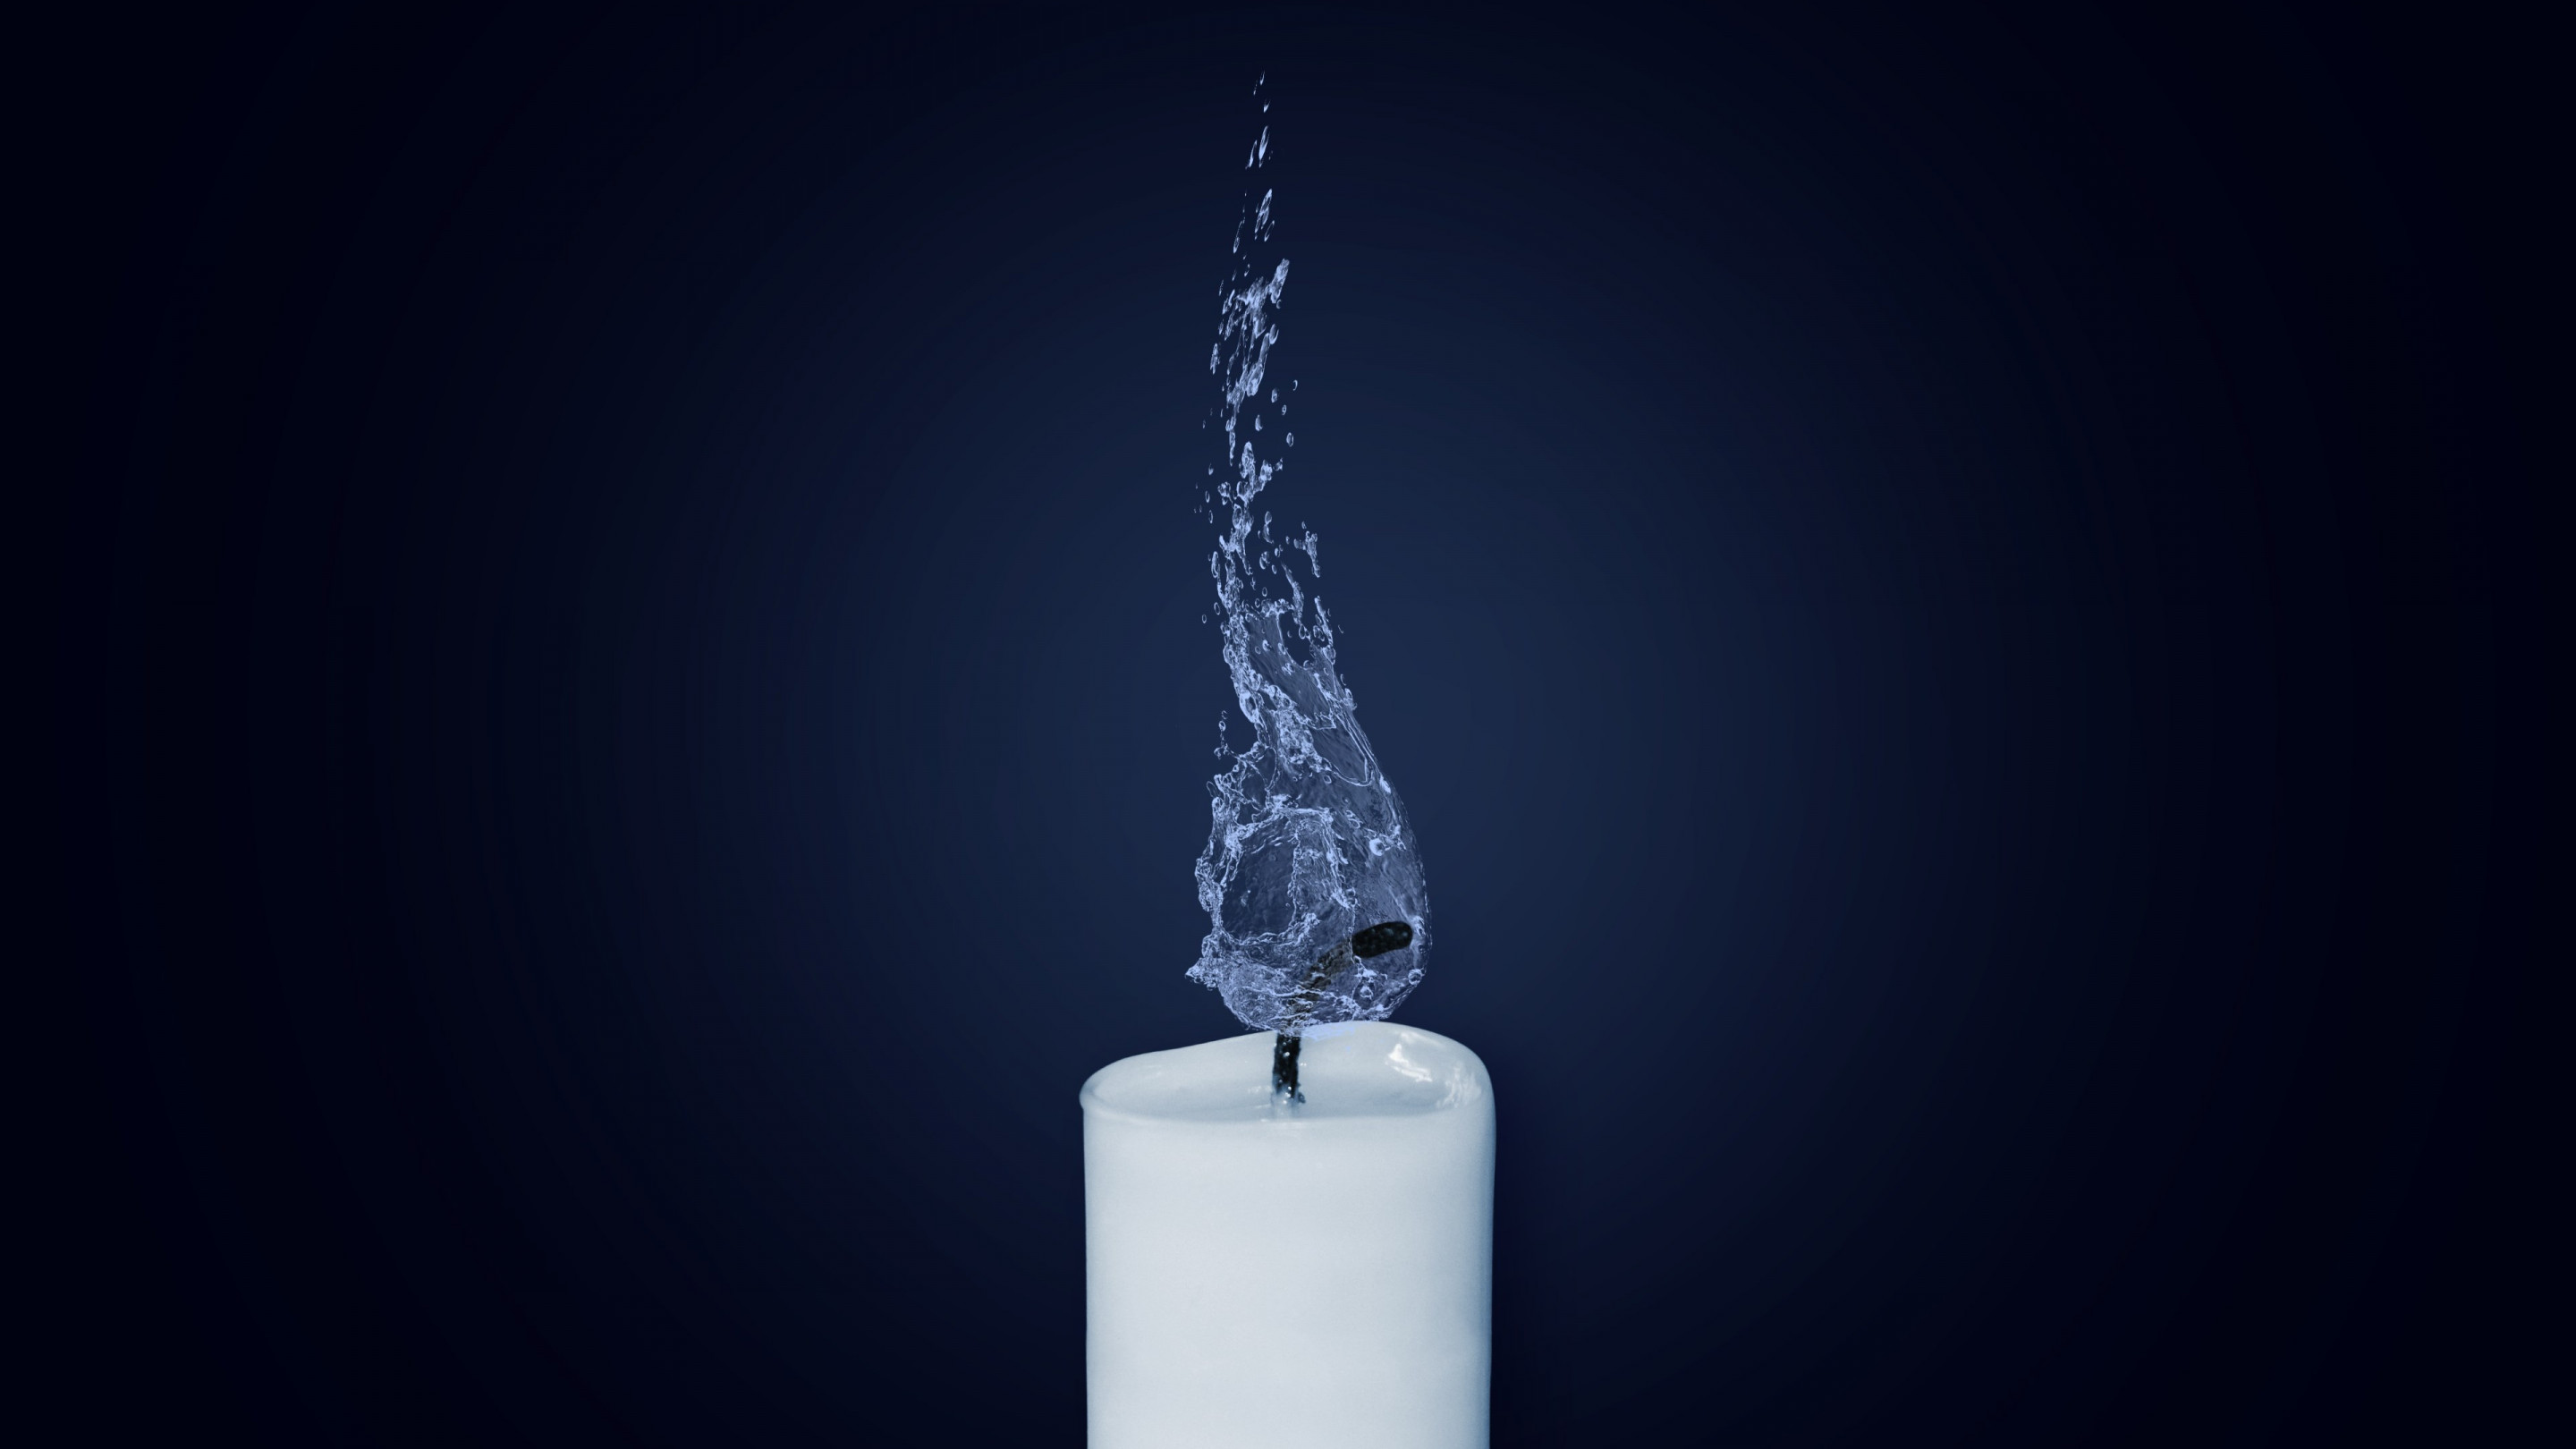 Water Flame. Candlelight wallpaper 2880x1620